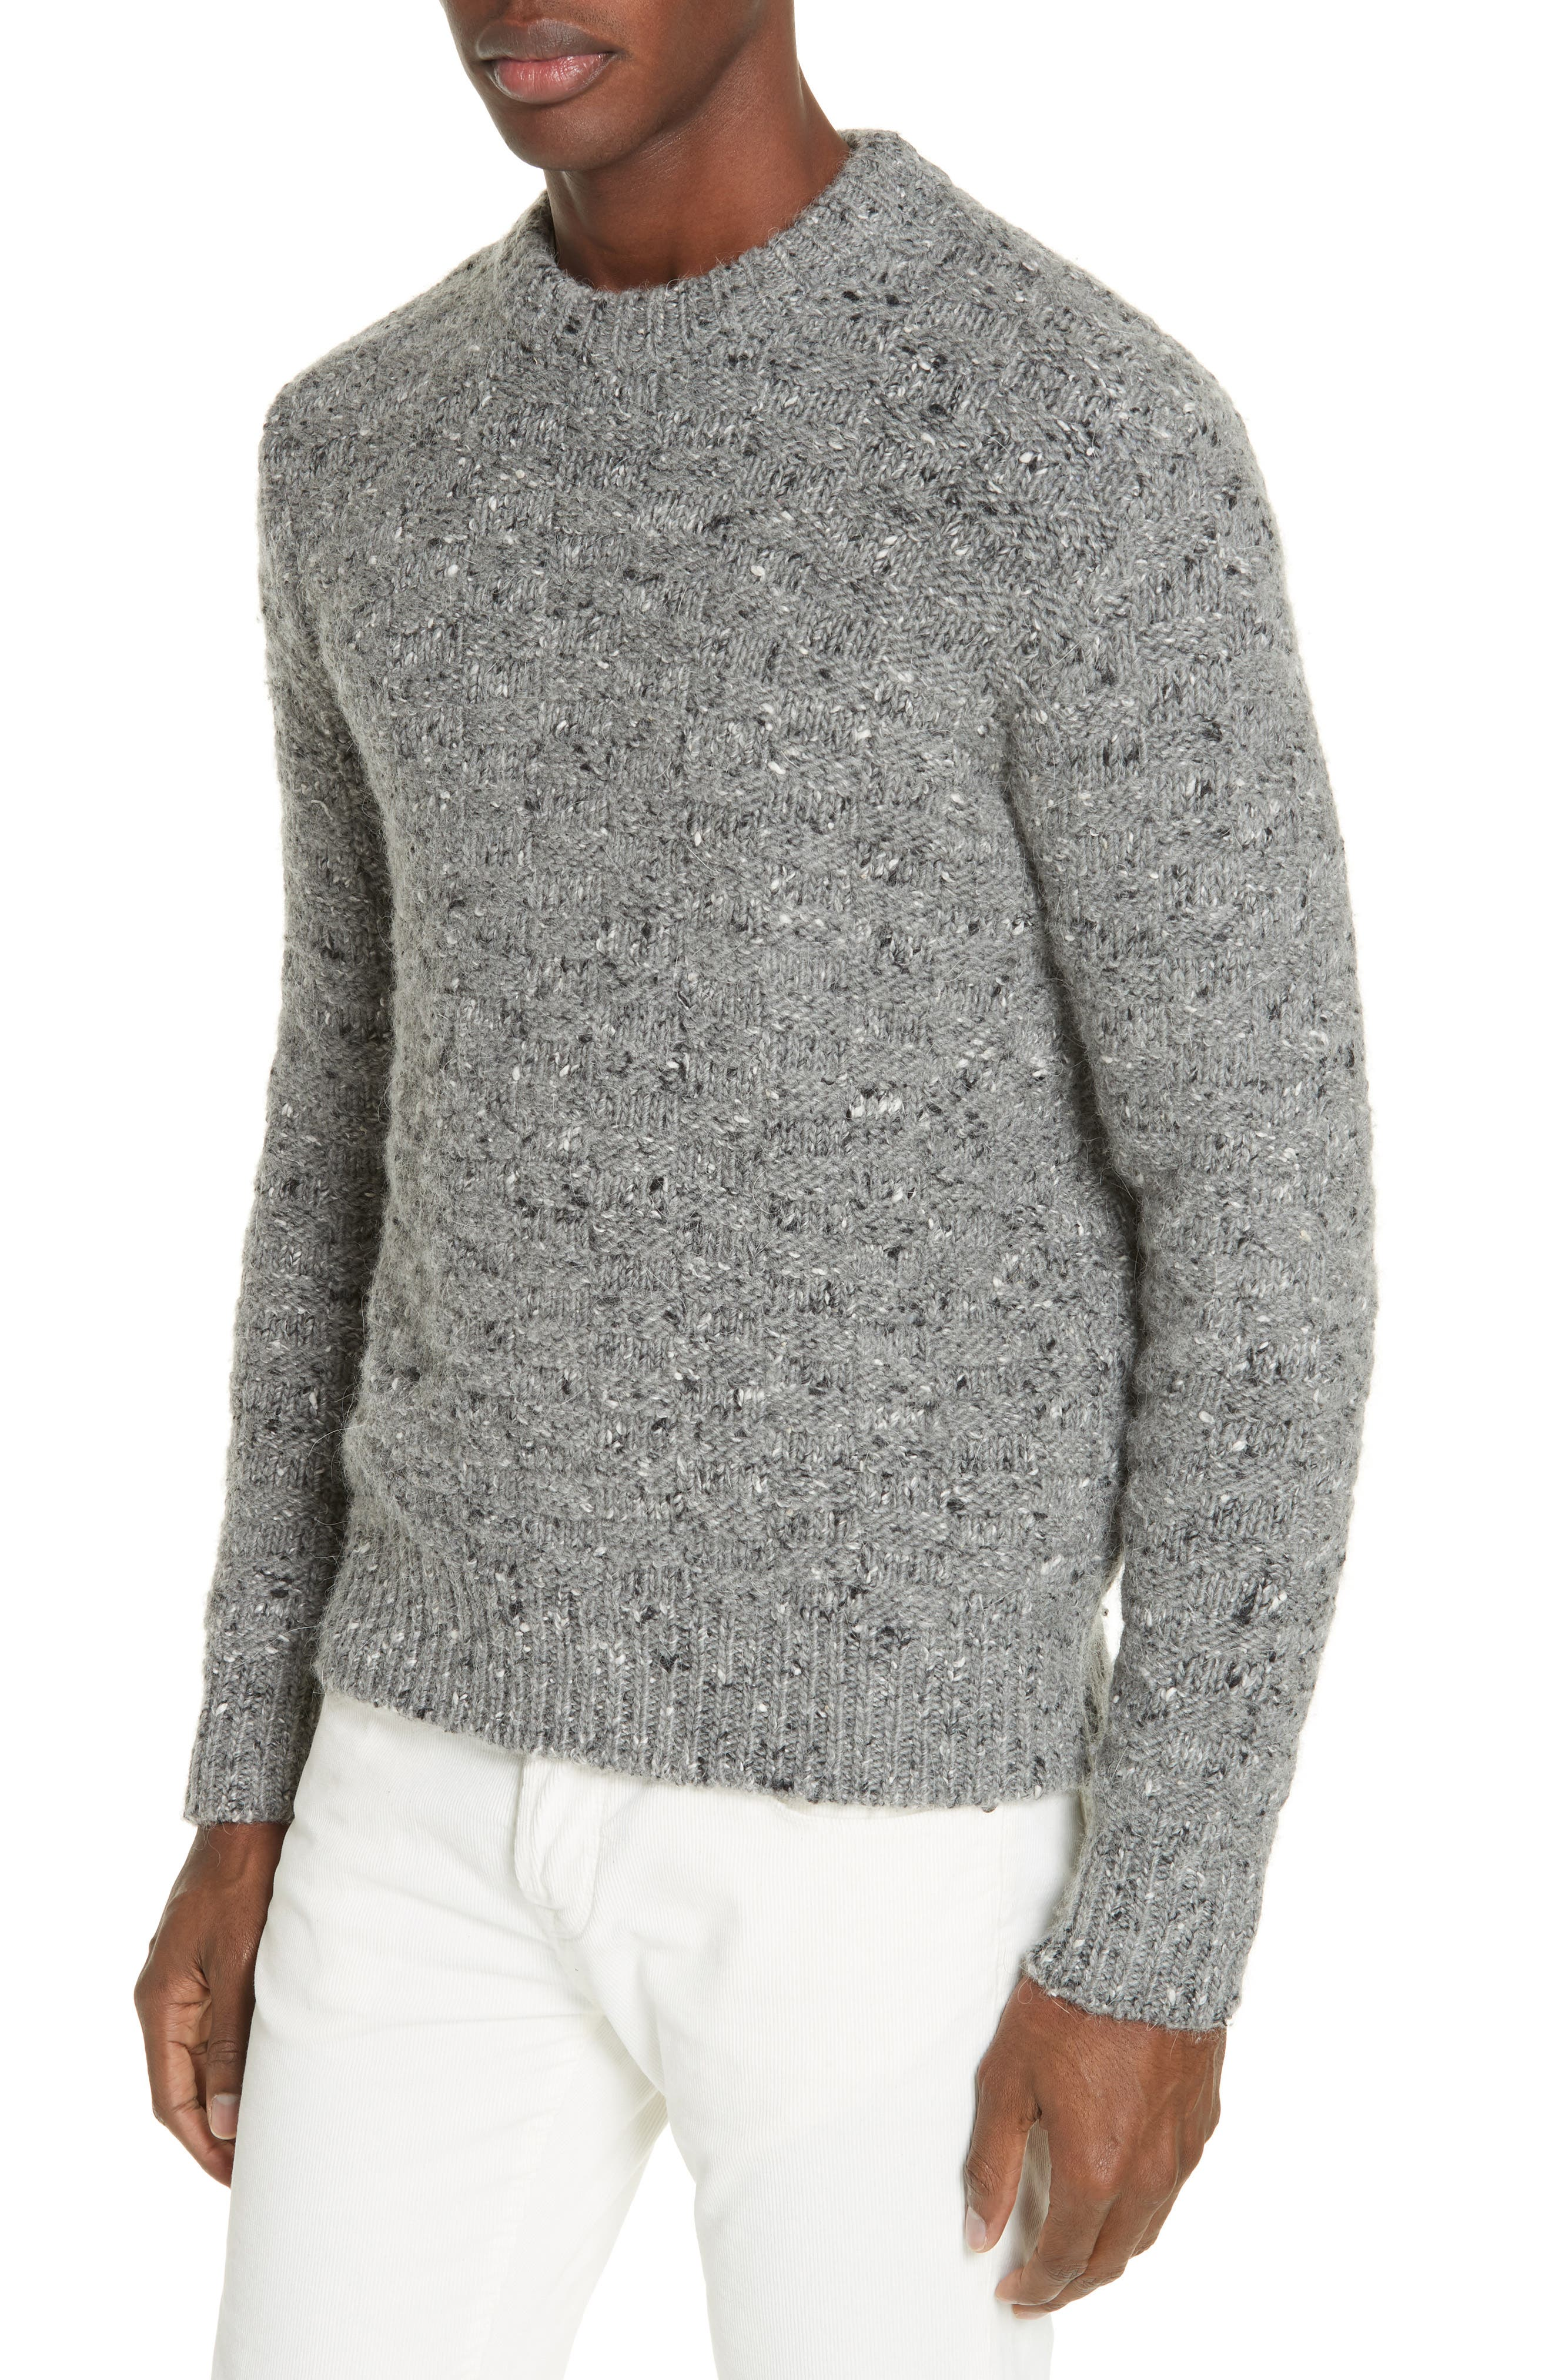 Wool Blend Crewneck Sweater,                             Alternate thumbnail 4, color,                             GREY